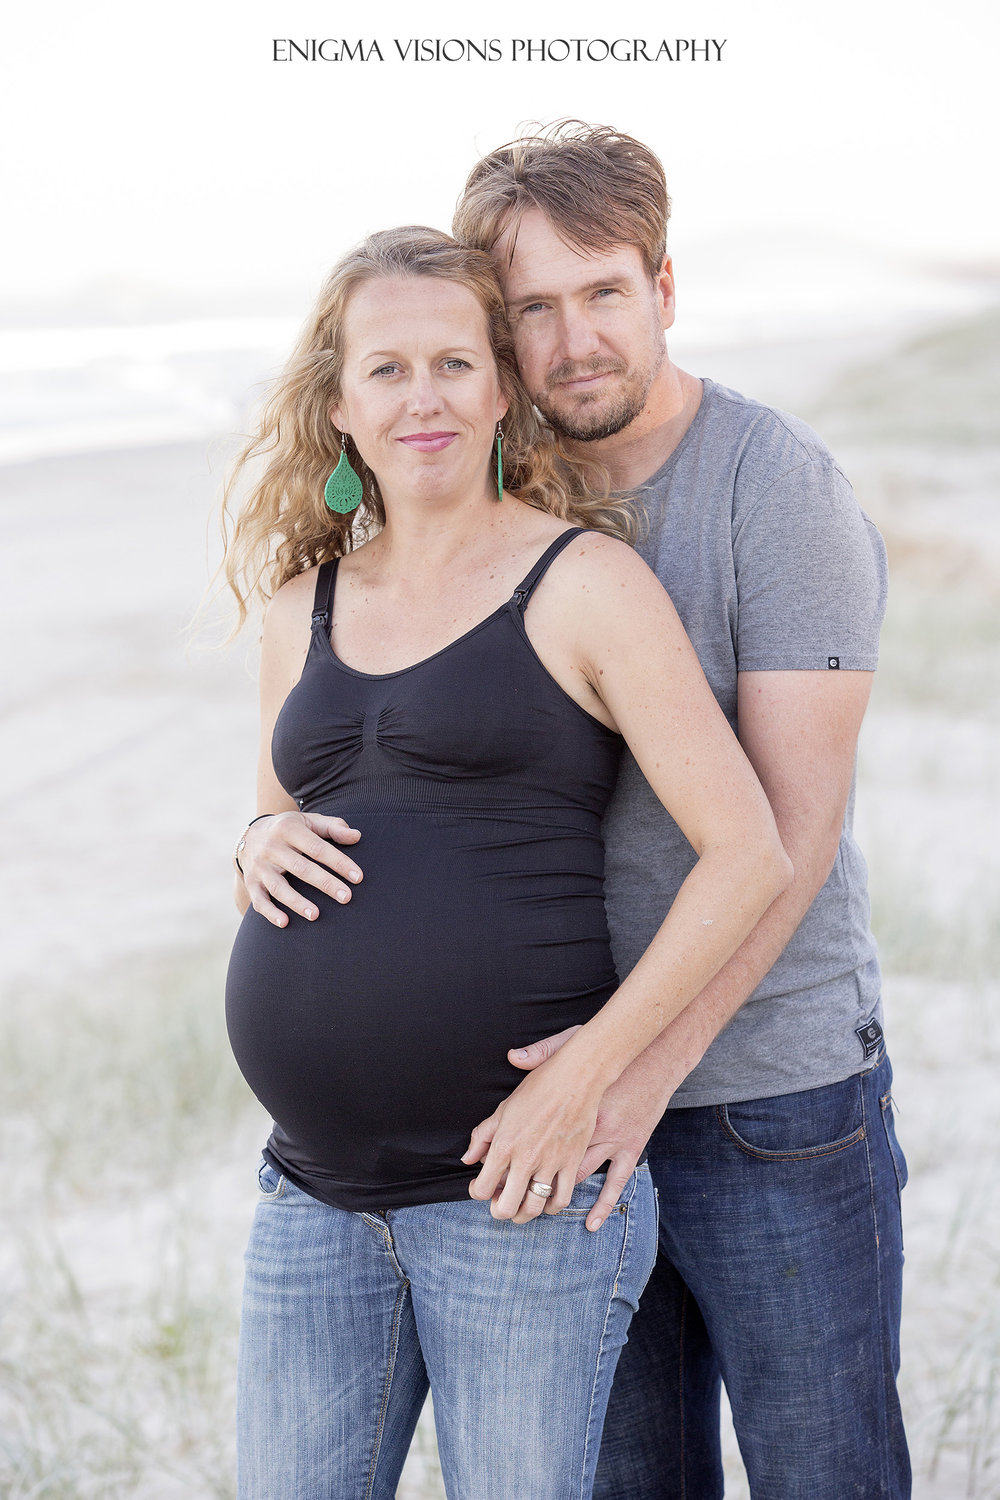 enigma_visions_photography_maternity_melandandrew_kingscliff (25).jpg